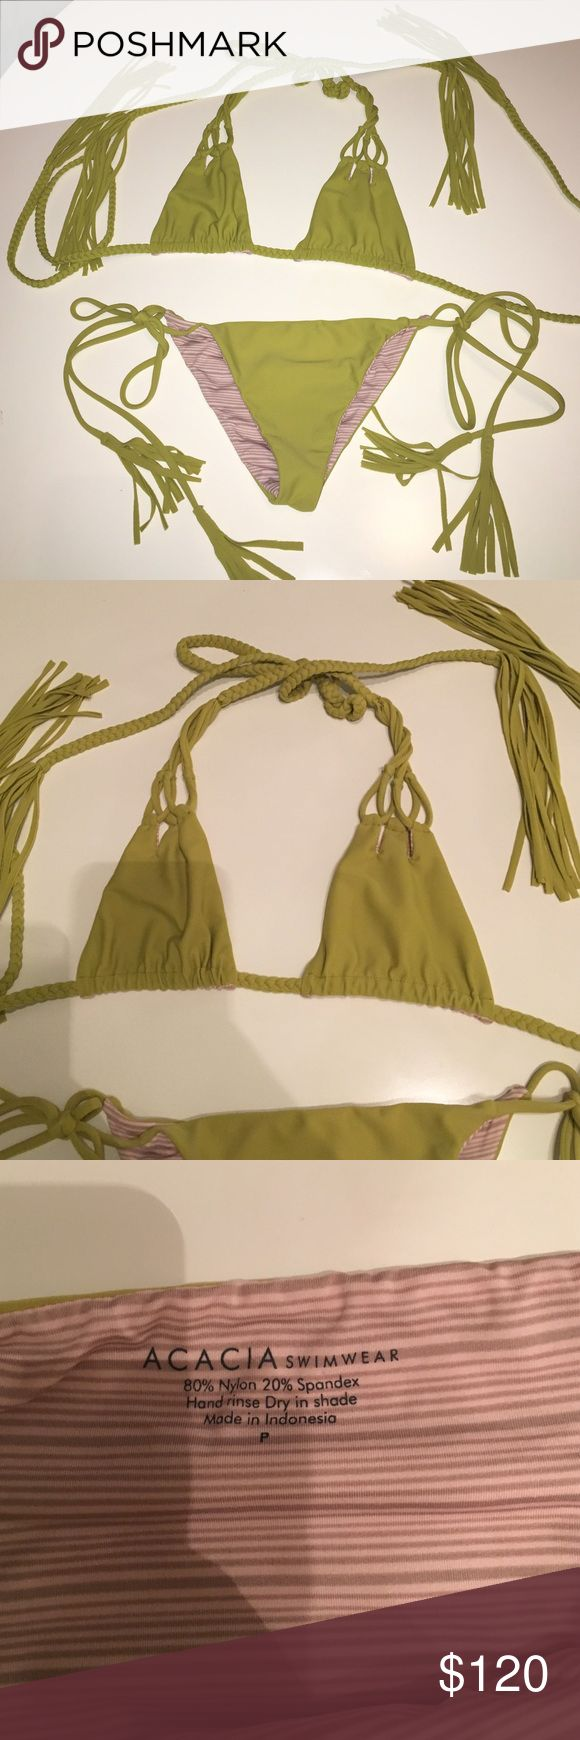 Acacia bikini set Adorable chartreuse color acacia bikini. Worn once. Bottom is size petite which is like x small and top is size small. Perfect condition. acacia swimwear Swim Bikinis